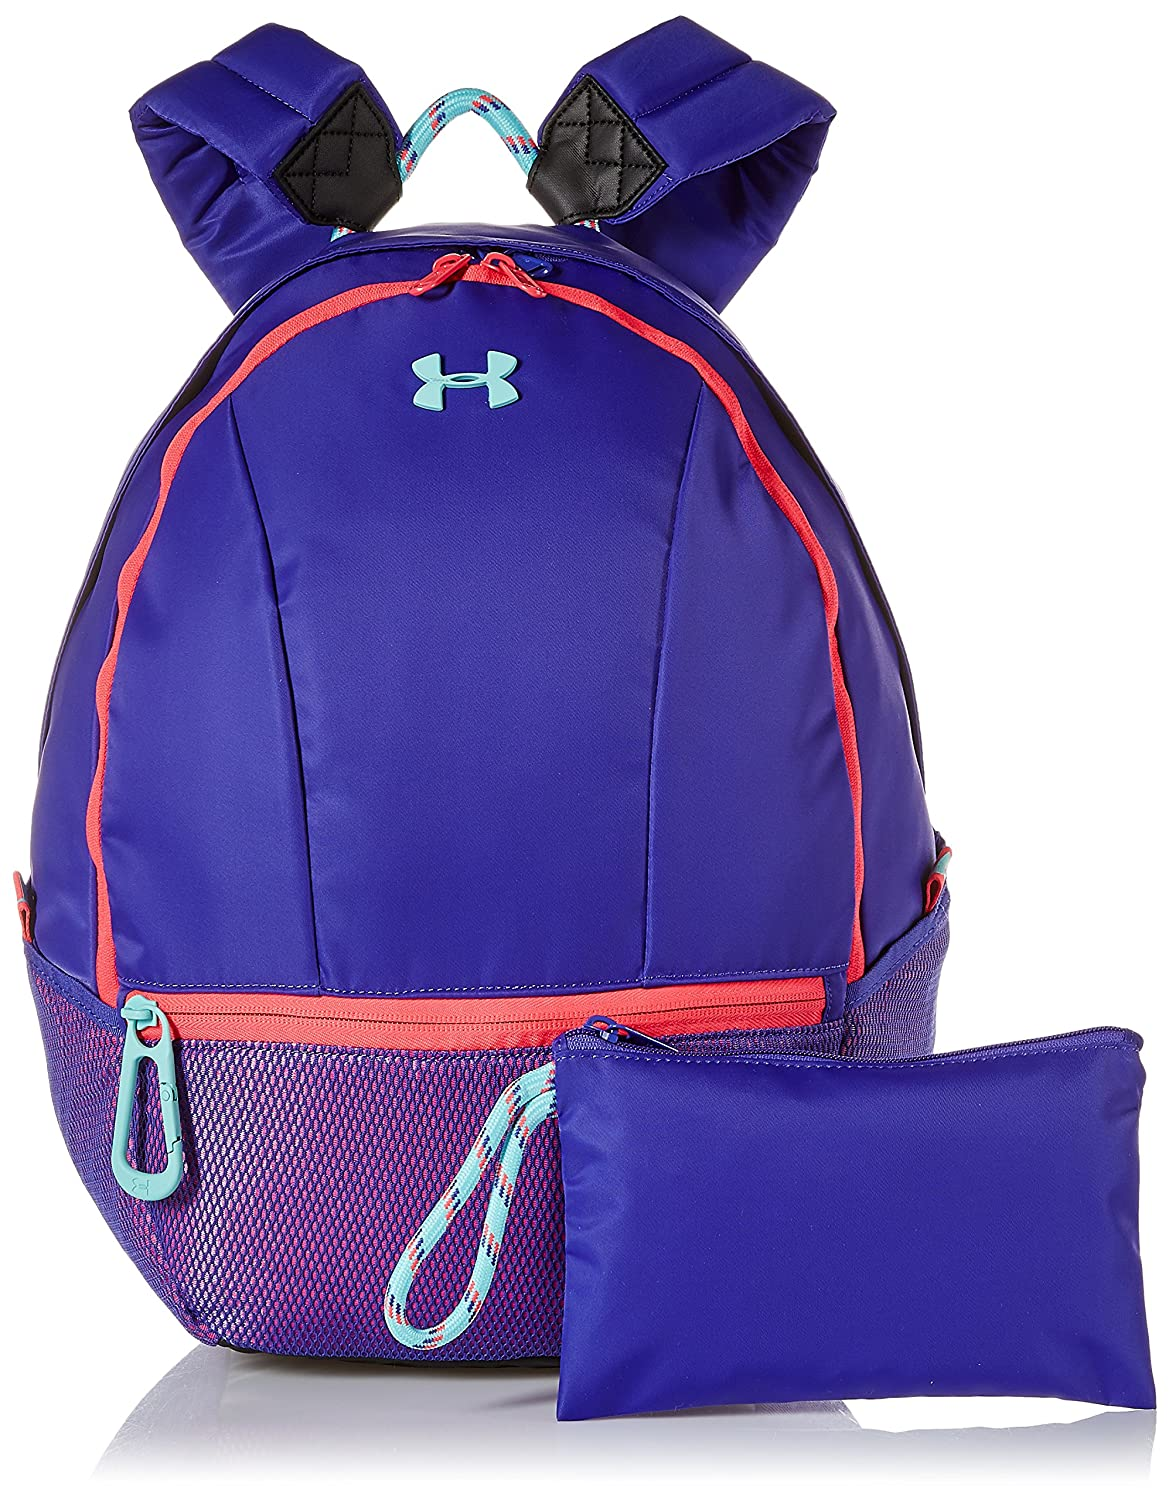 65dacc444a9ceb Amazon.com: Under Armour Girls' Downtown Backpack, Black (001)/Penta Pink,  One Size: Clothing